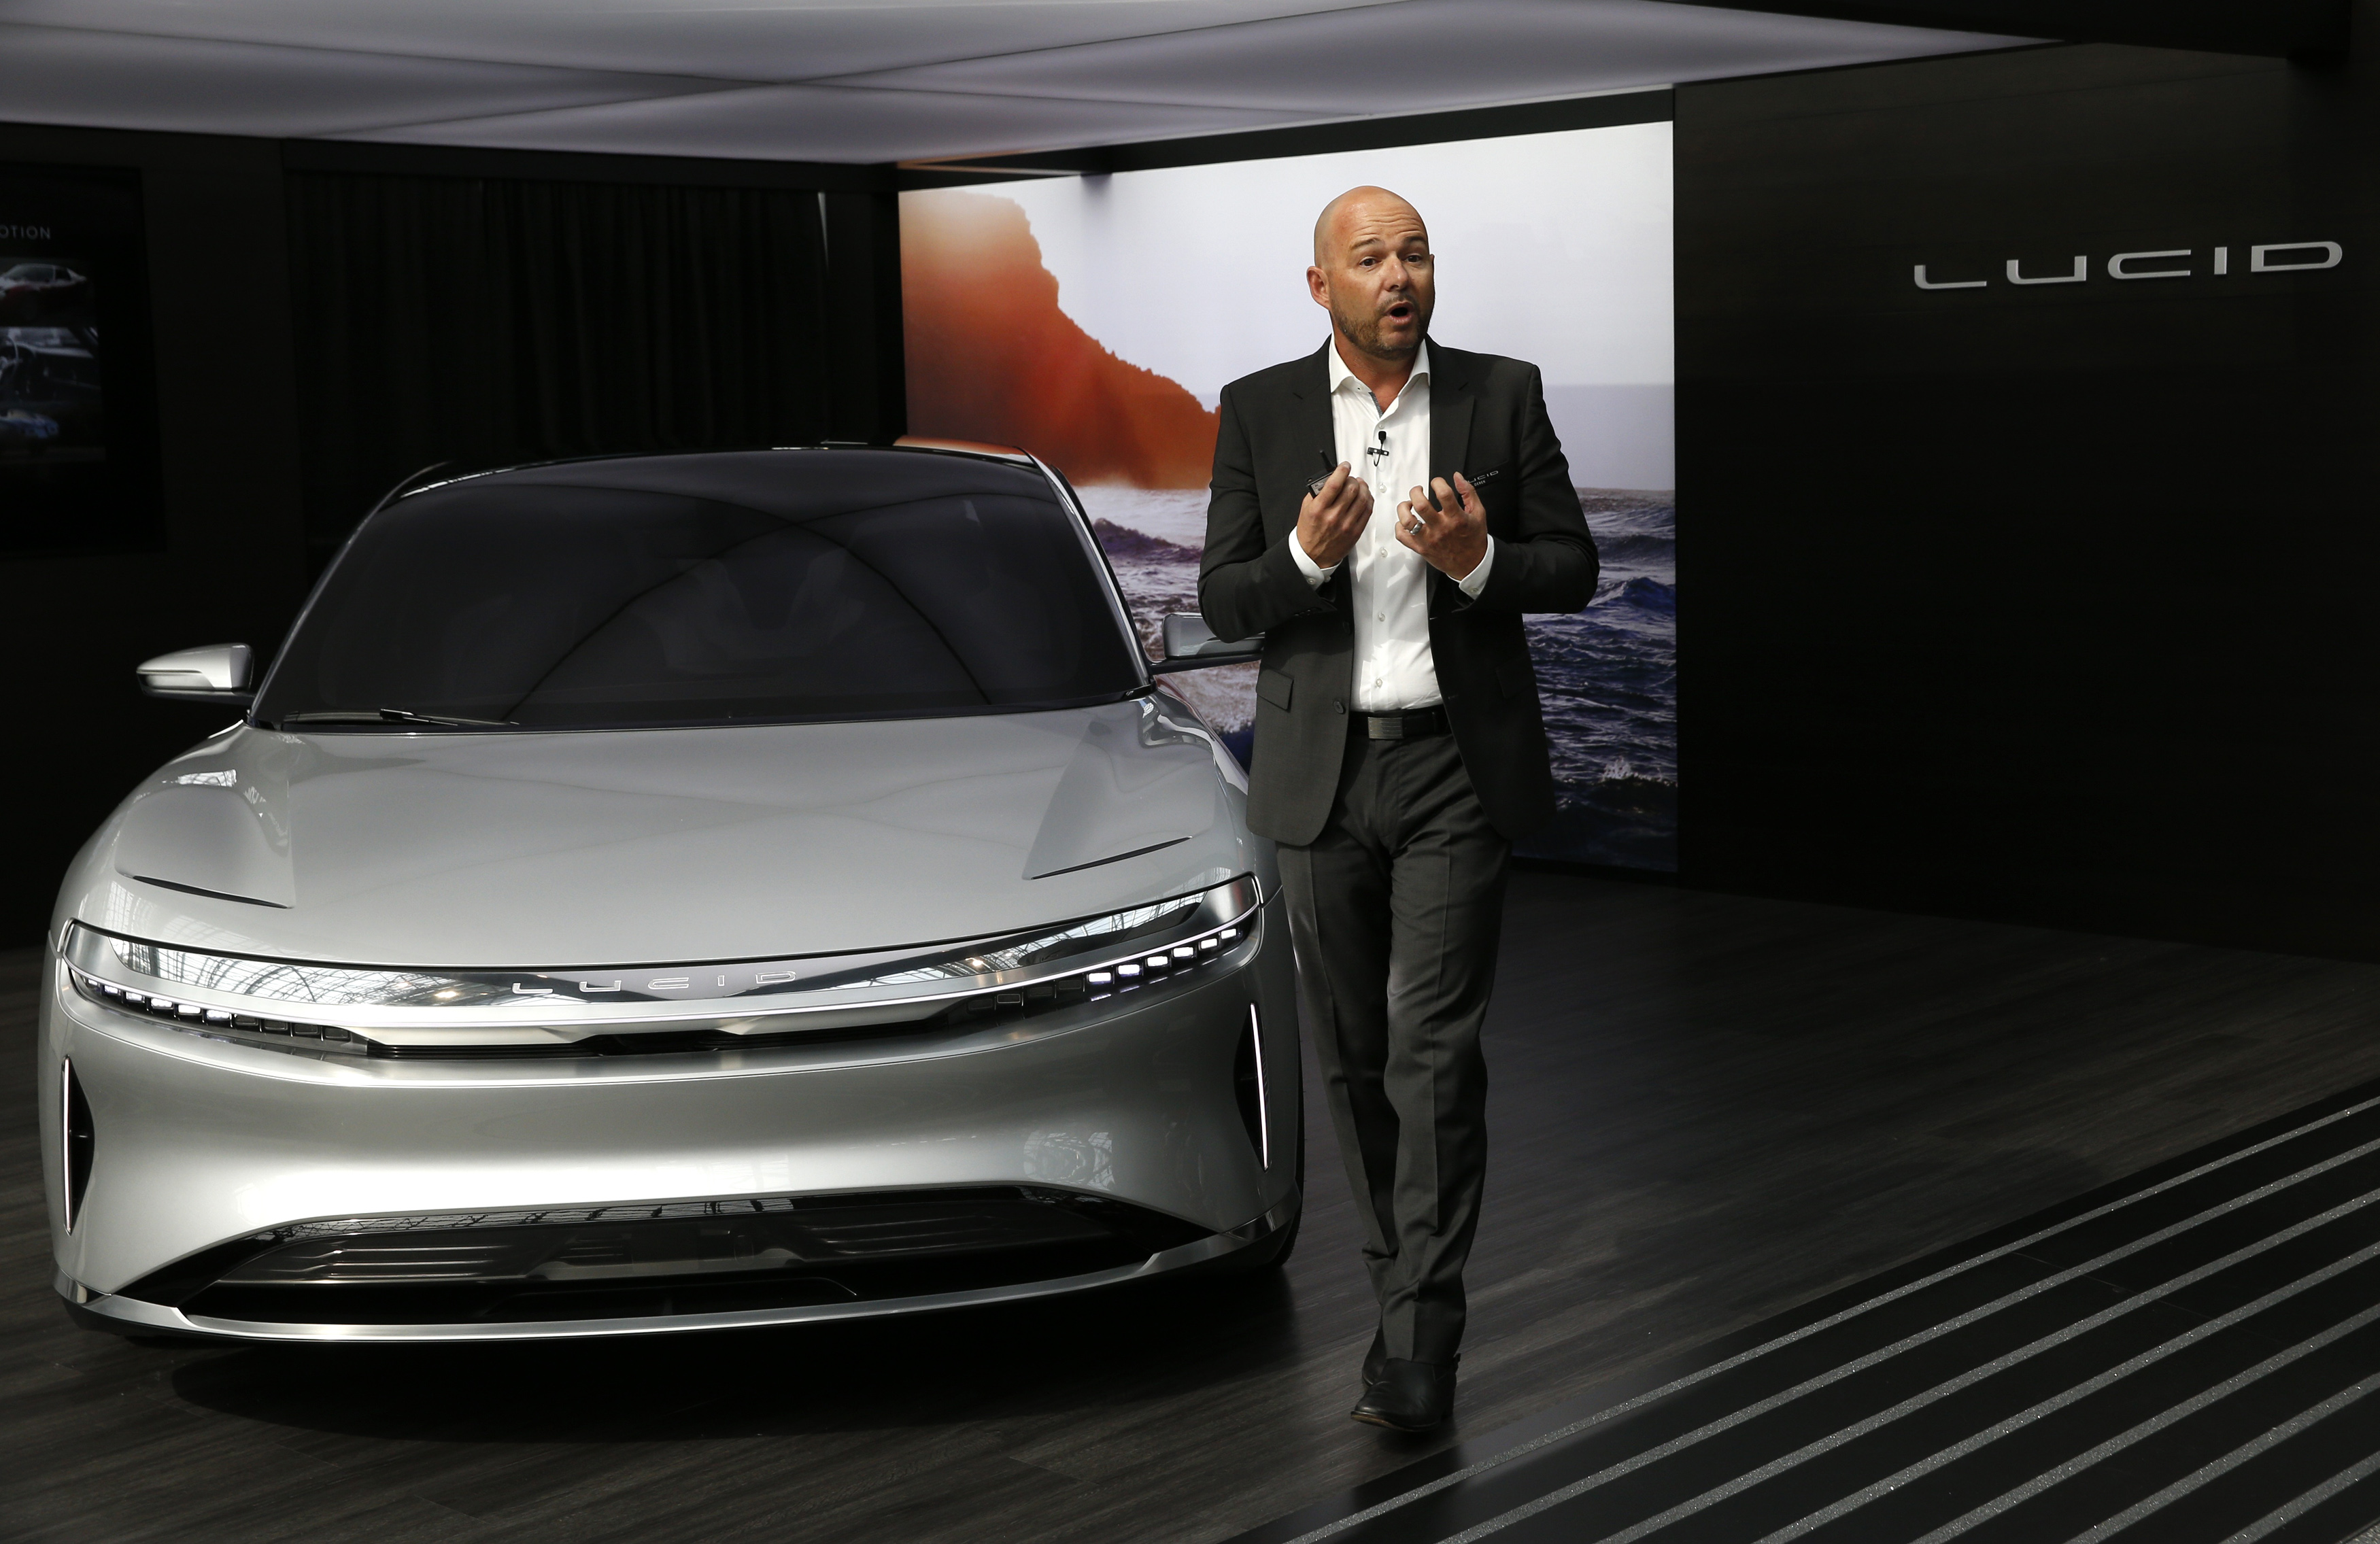 Derek Jenkins, VP of Design at Lucid Motors, introduces the alpha prototype of the Lucid Air at the 2017 New York International Auto Show in New York City, U.S. April 13, 2017. REUTERS/Andrew Kelly - HP1ED4D16CEI7